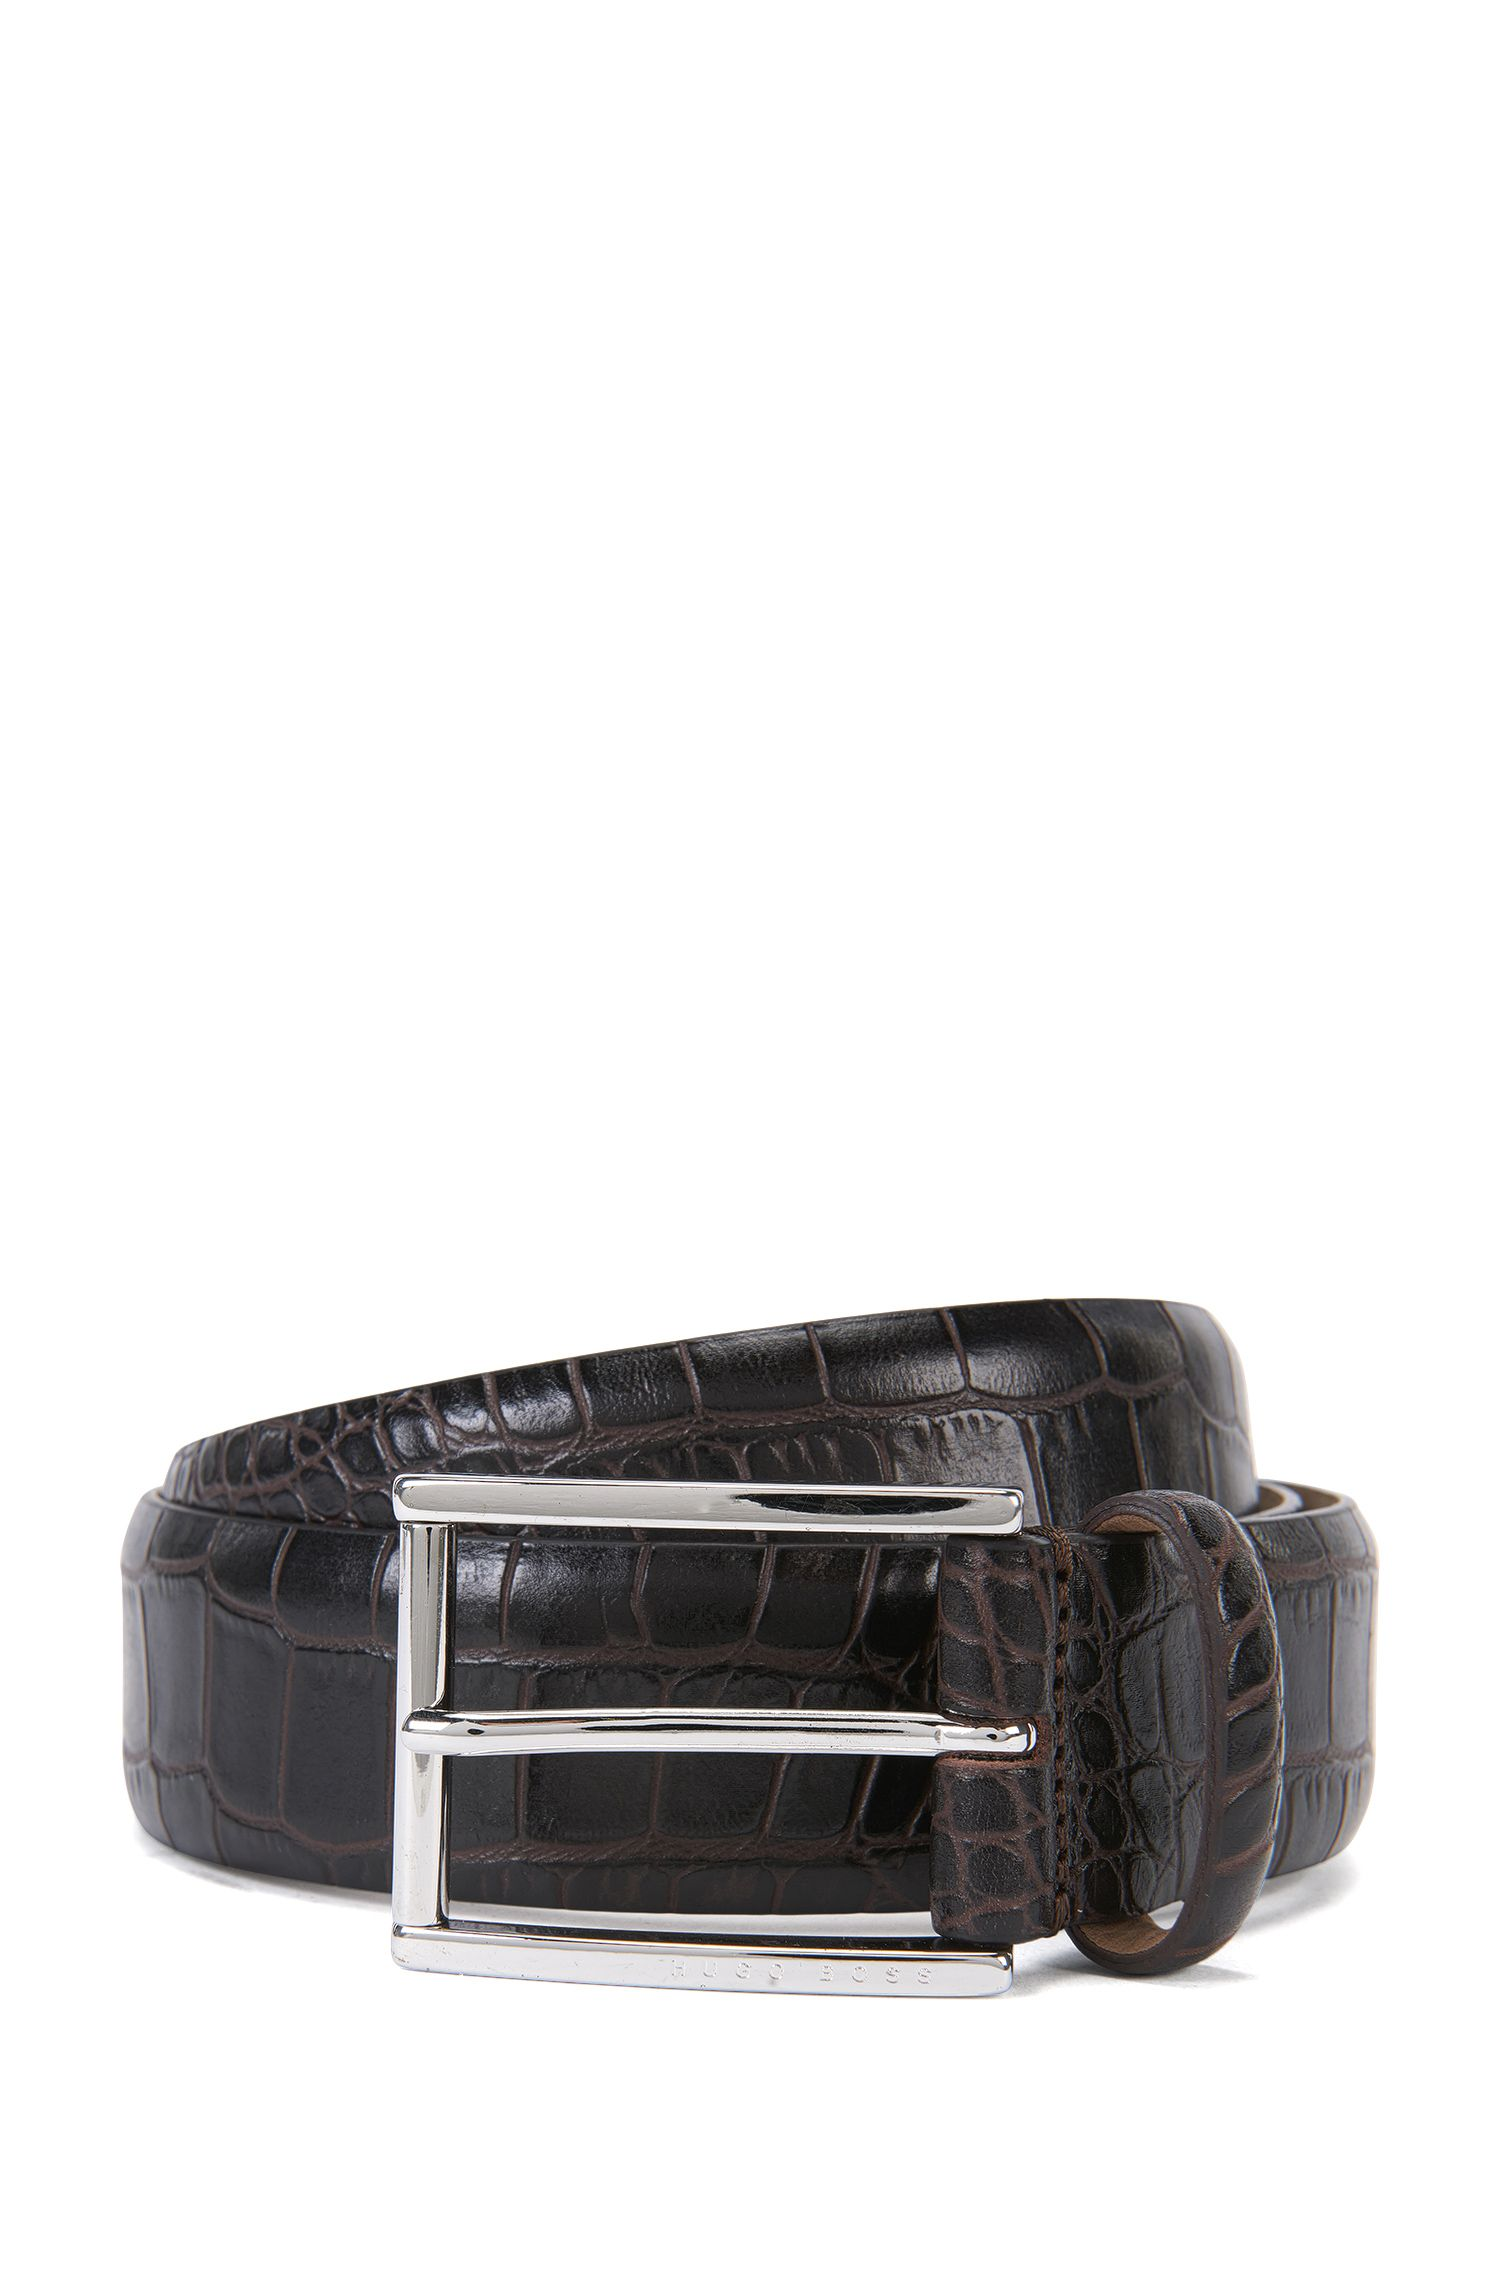 'T-Lelion' | Italian Patent Leather Belt